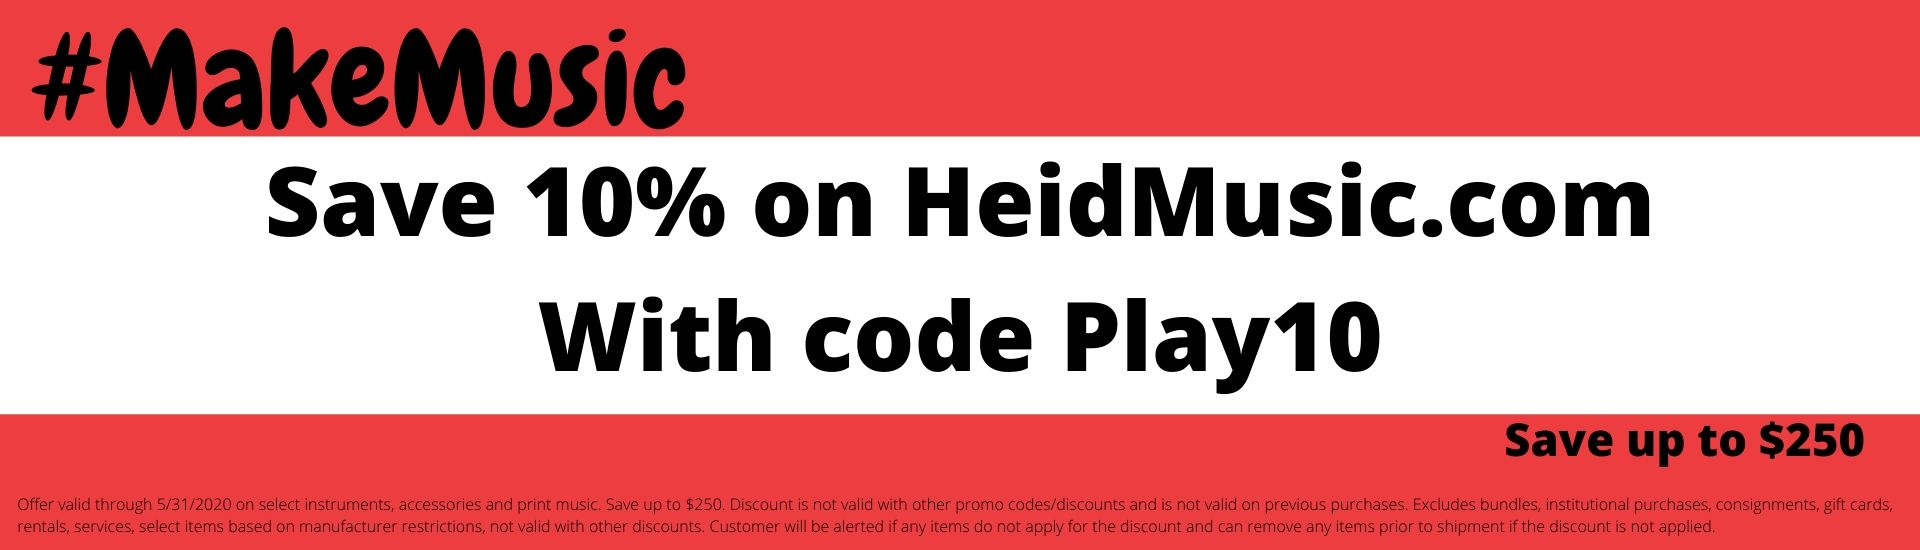 Save 10% on Instruments, music and accessories through May 31 with code Play10. Some exclusions may apply